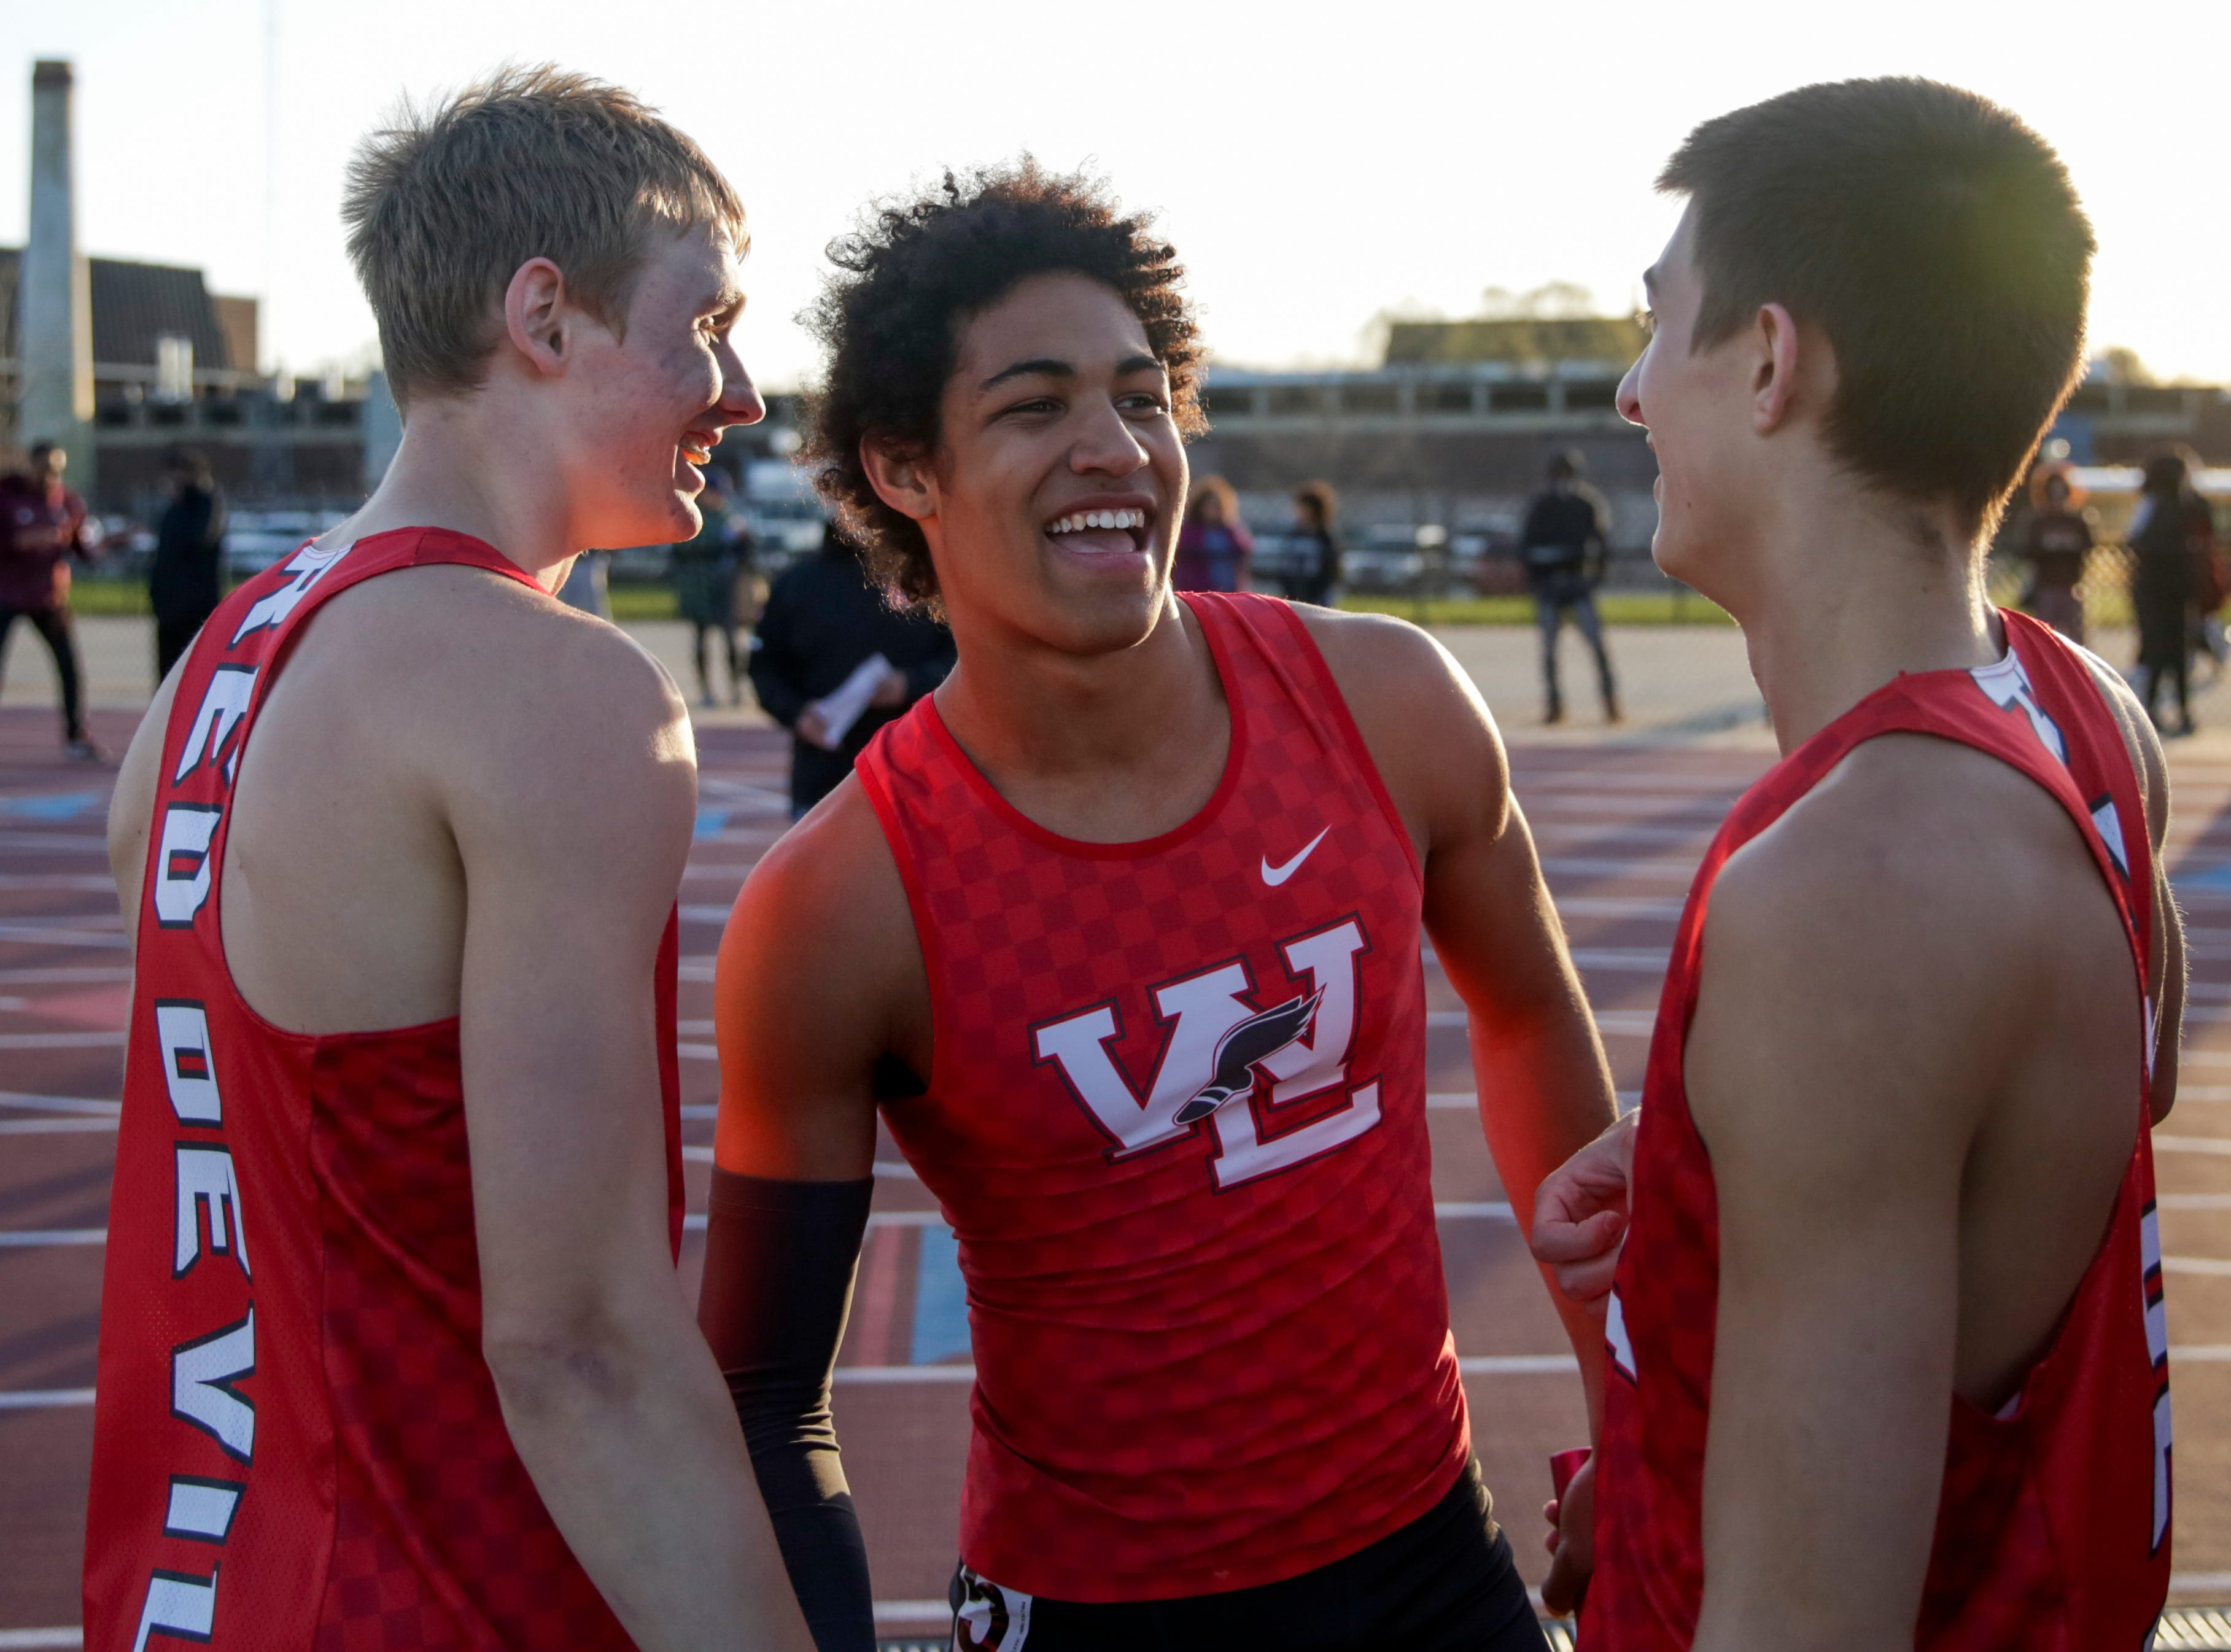 Western Lafayette's Kyle Hazell, center, celebrates with teammates after competing in the men's 4x400 meter relay during the 2019 Sprinters Showcase, Friday, April 12, 2019, at Lafayette Jeff High School in Lafayette.